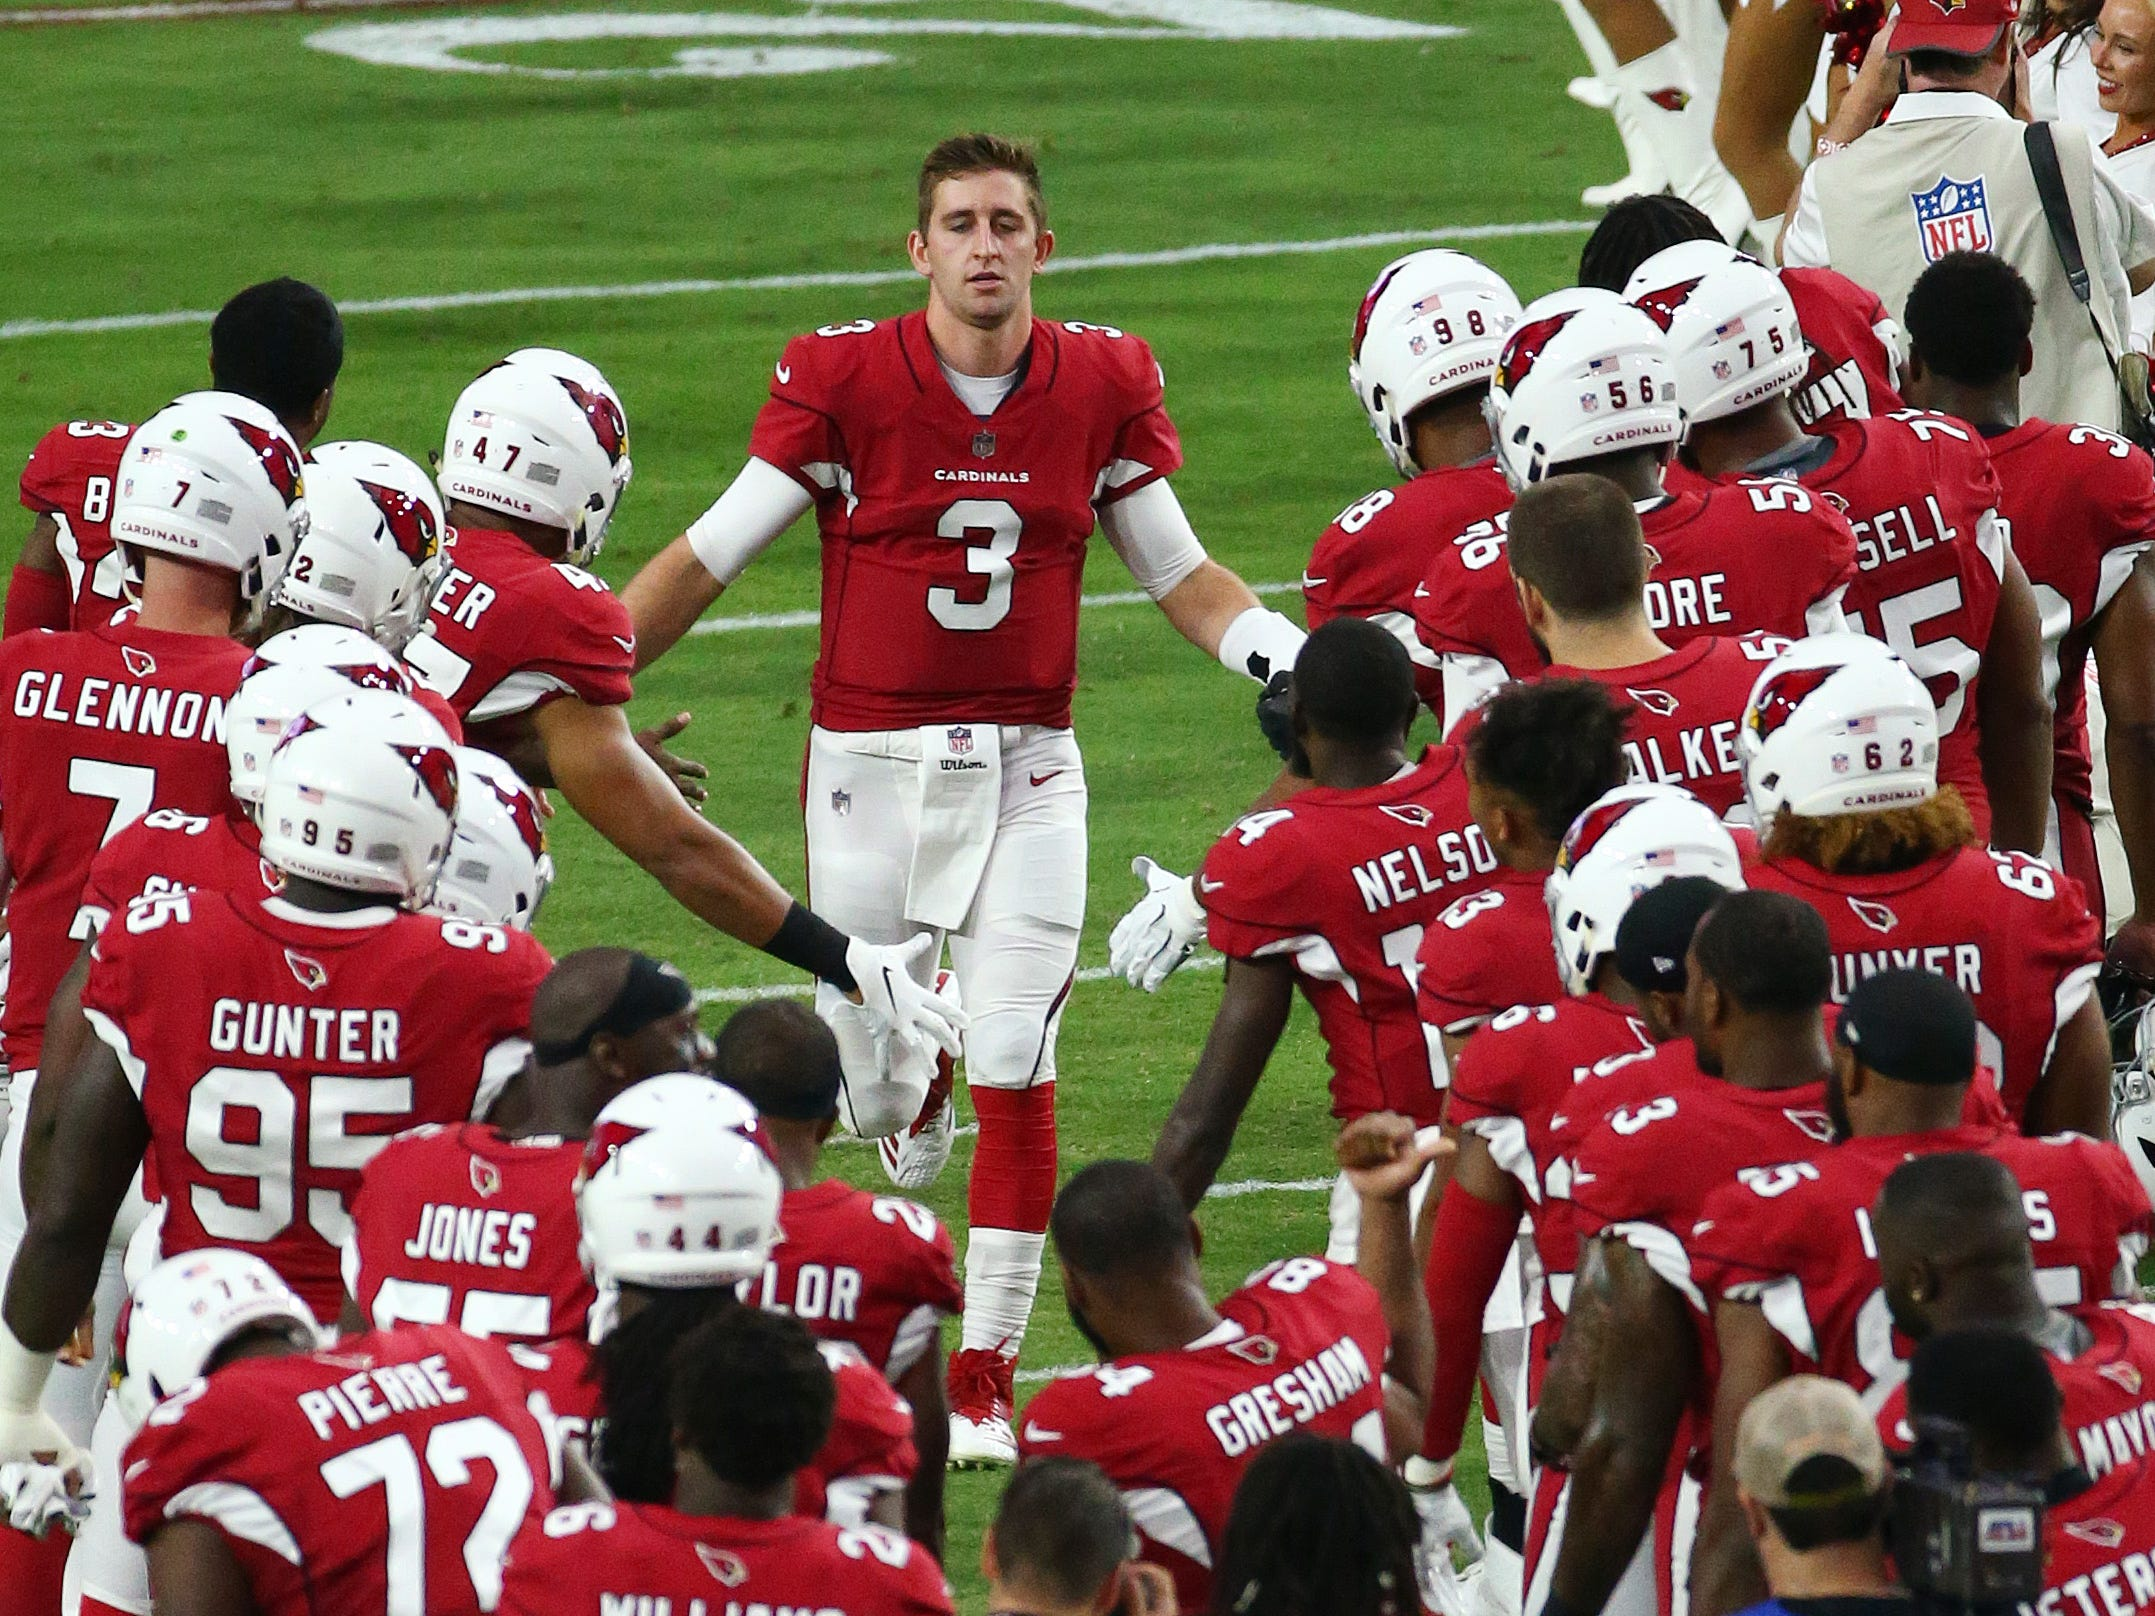 Arizona Cardinals quarterback Josh Rosin takes the field against the Seattle Seahawks at State Farm Stadium in Glendale,  Ariz.